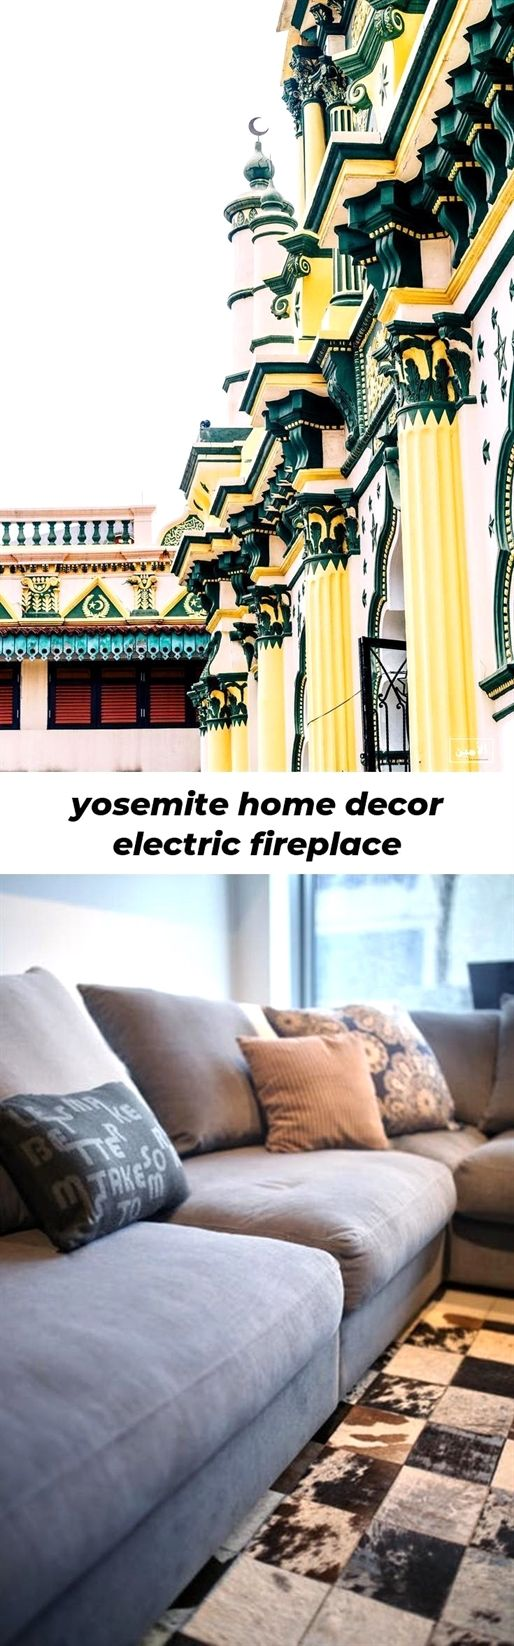 24++ Best home decor stores in houston info